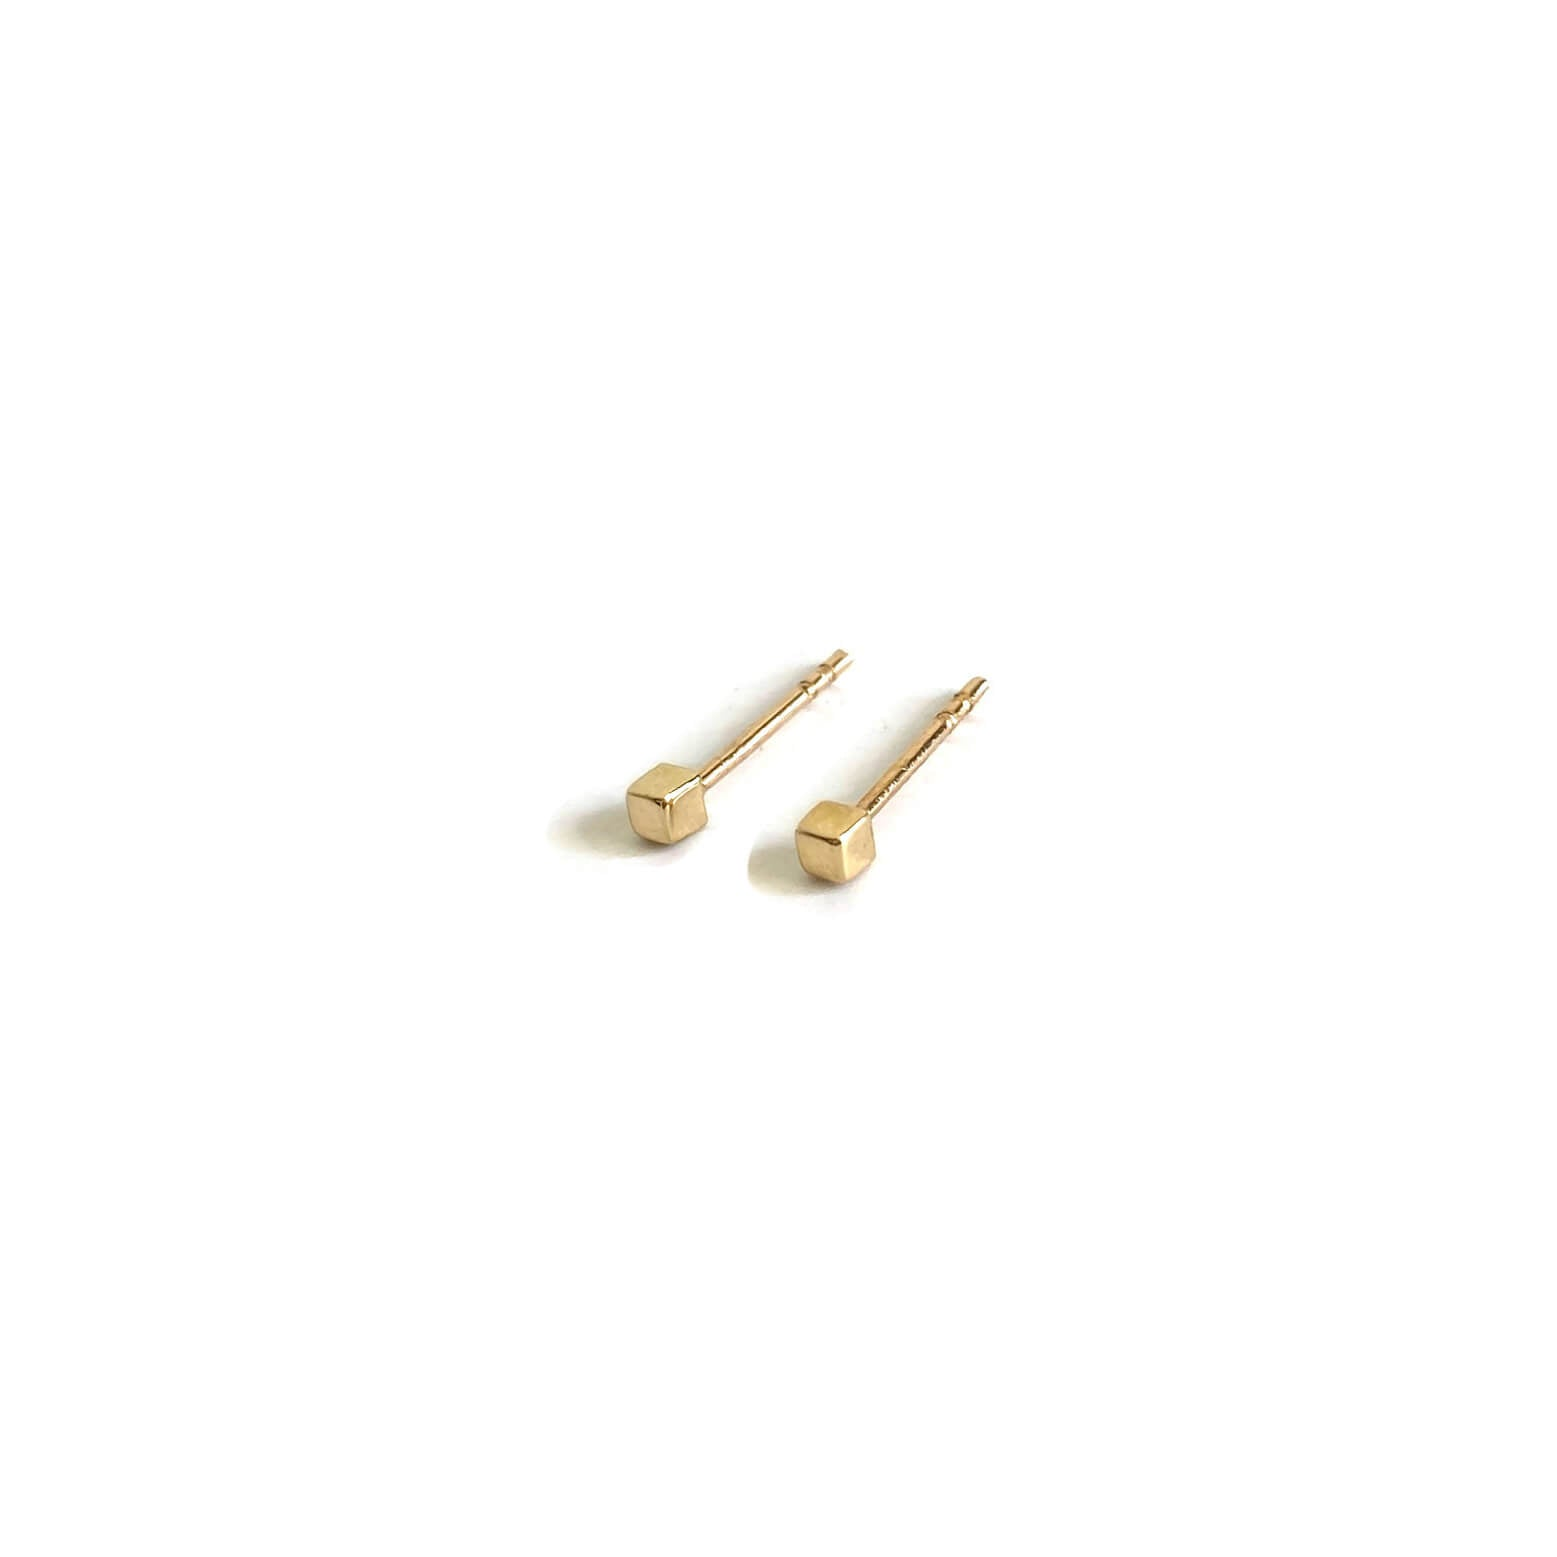 14k cube stud earrings are made of solid 14k gold and 14k ear posts